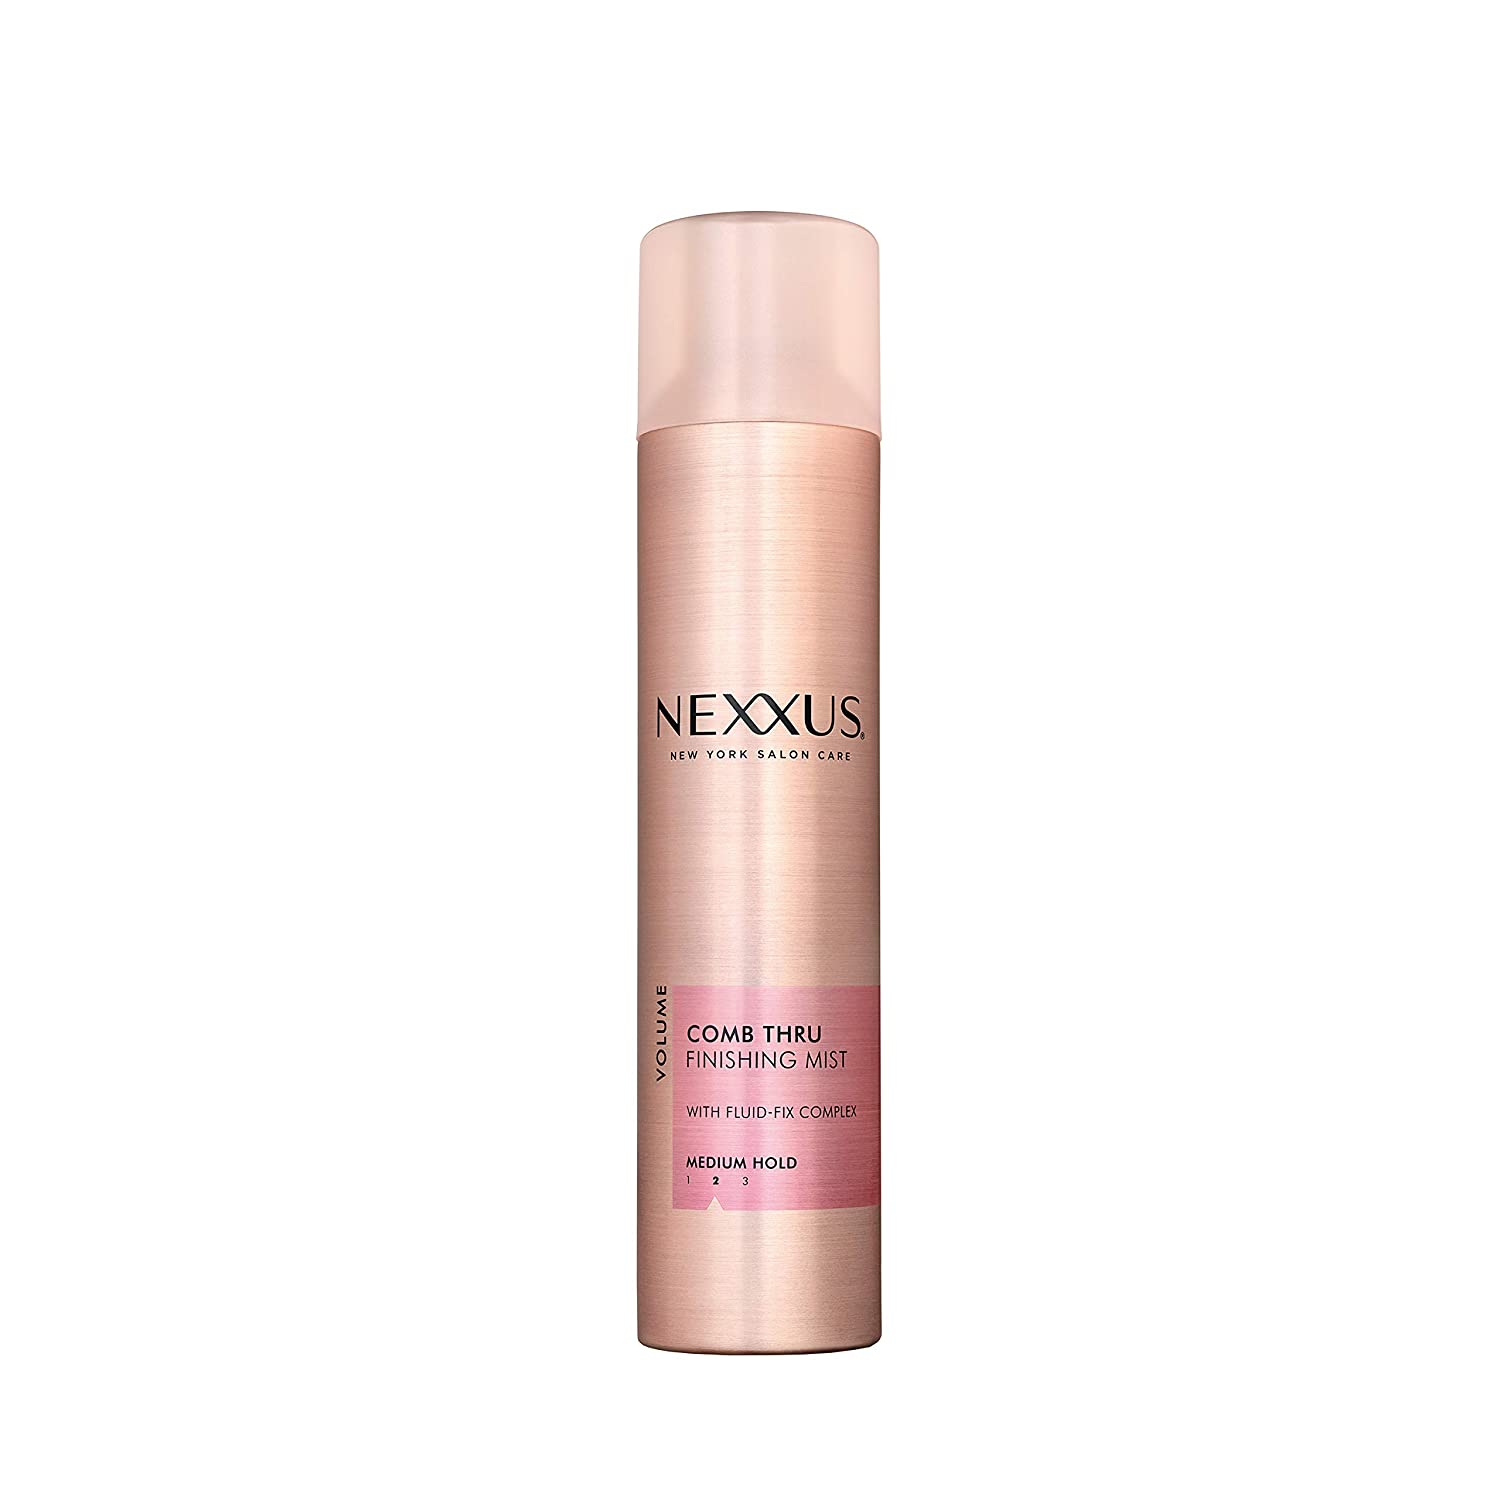 Nexxus Comb Thru Finishing Spray Hair Spray, Hair Spray for Volume, Hair Mist, Hair Shine Spray 10 oz : Hair Sprays : Beauty